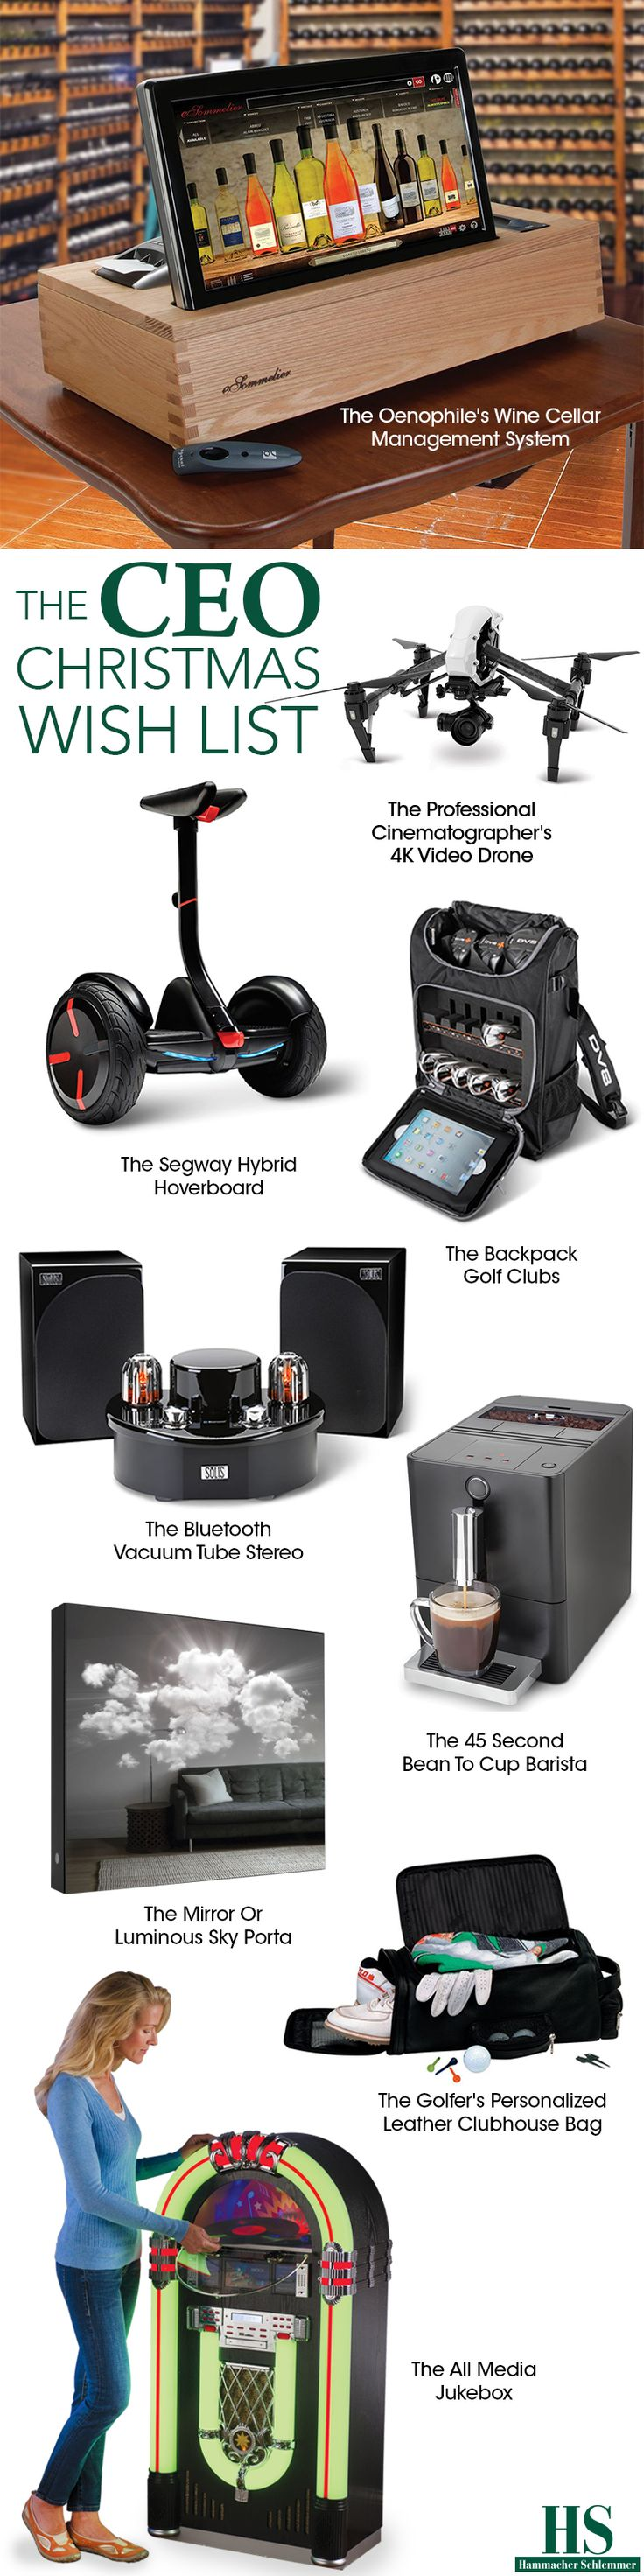 Check out the CEO Christmas wish list from Hammacher Schlemmer